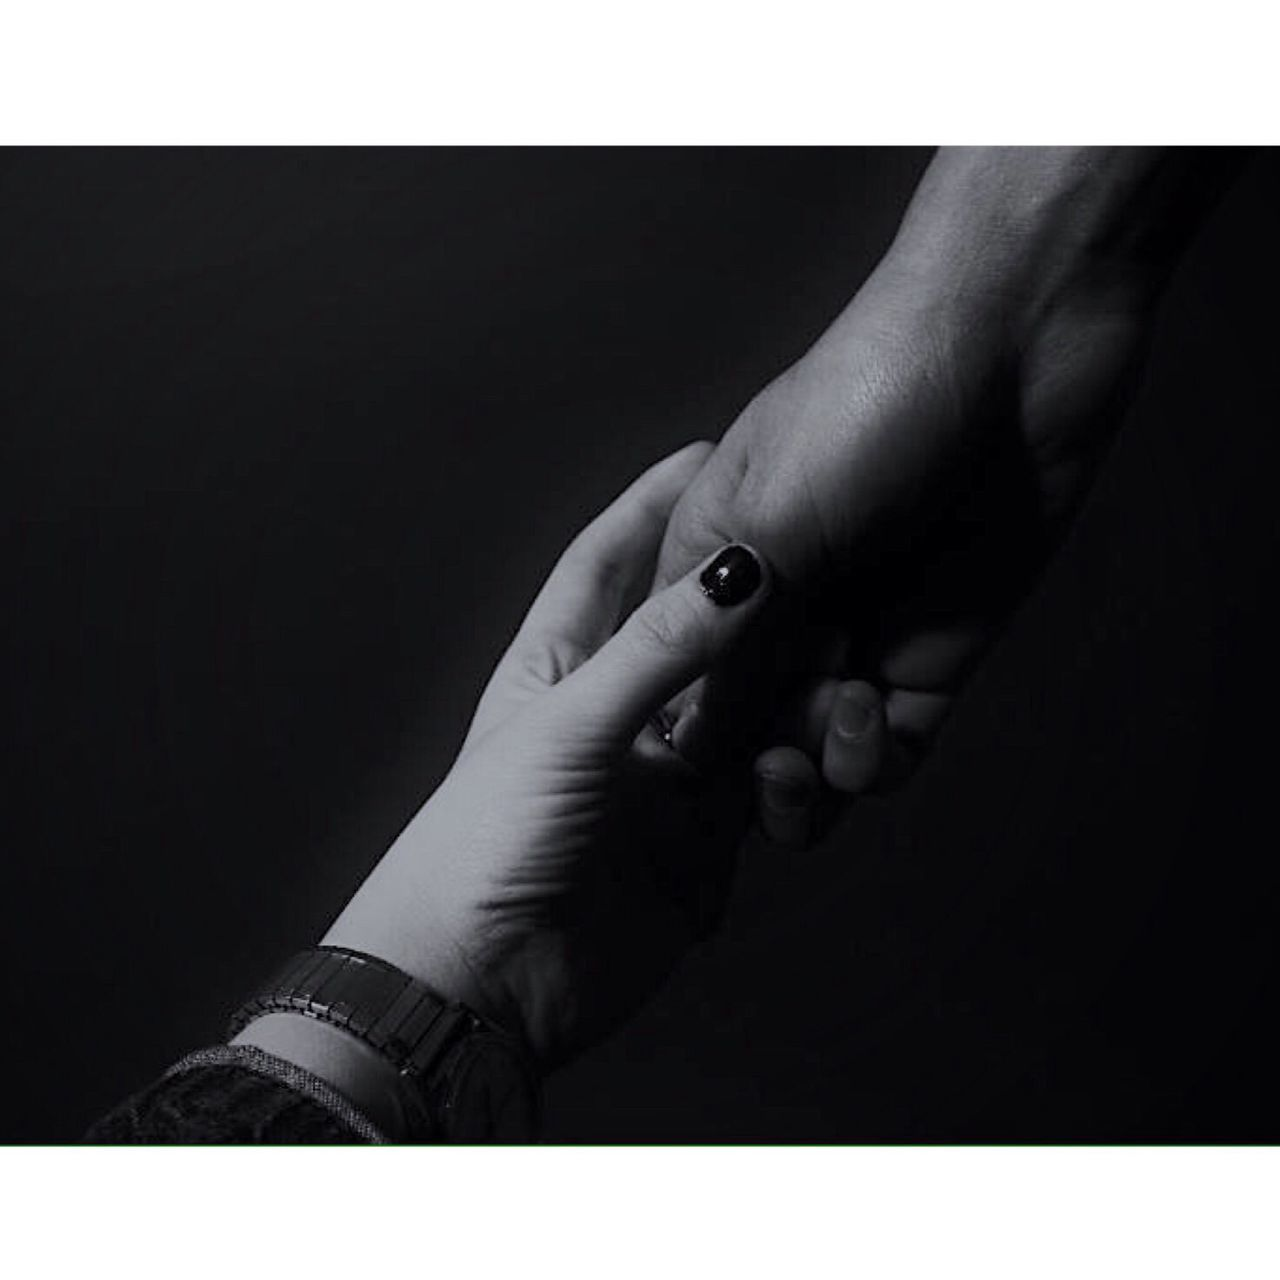 human hand, human body part, two people, bonding, togetherness, men, love, care, real people, touching, close-up, human leg, black background, adult, indoors, people, day, adults only